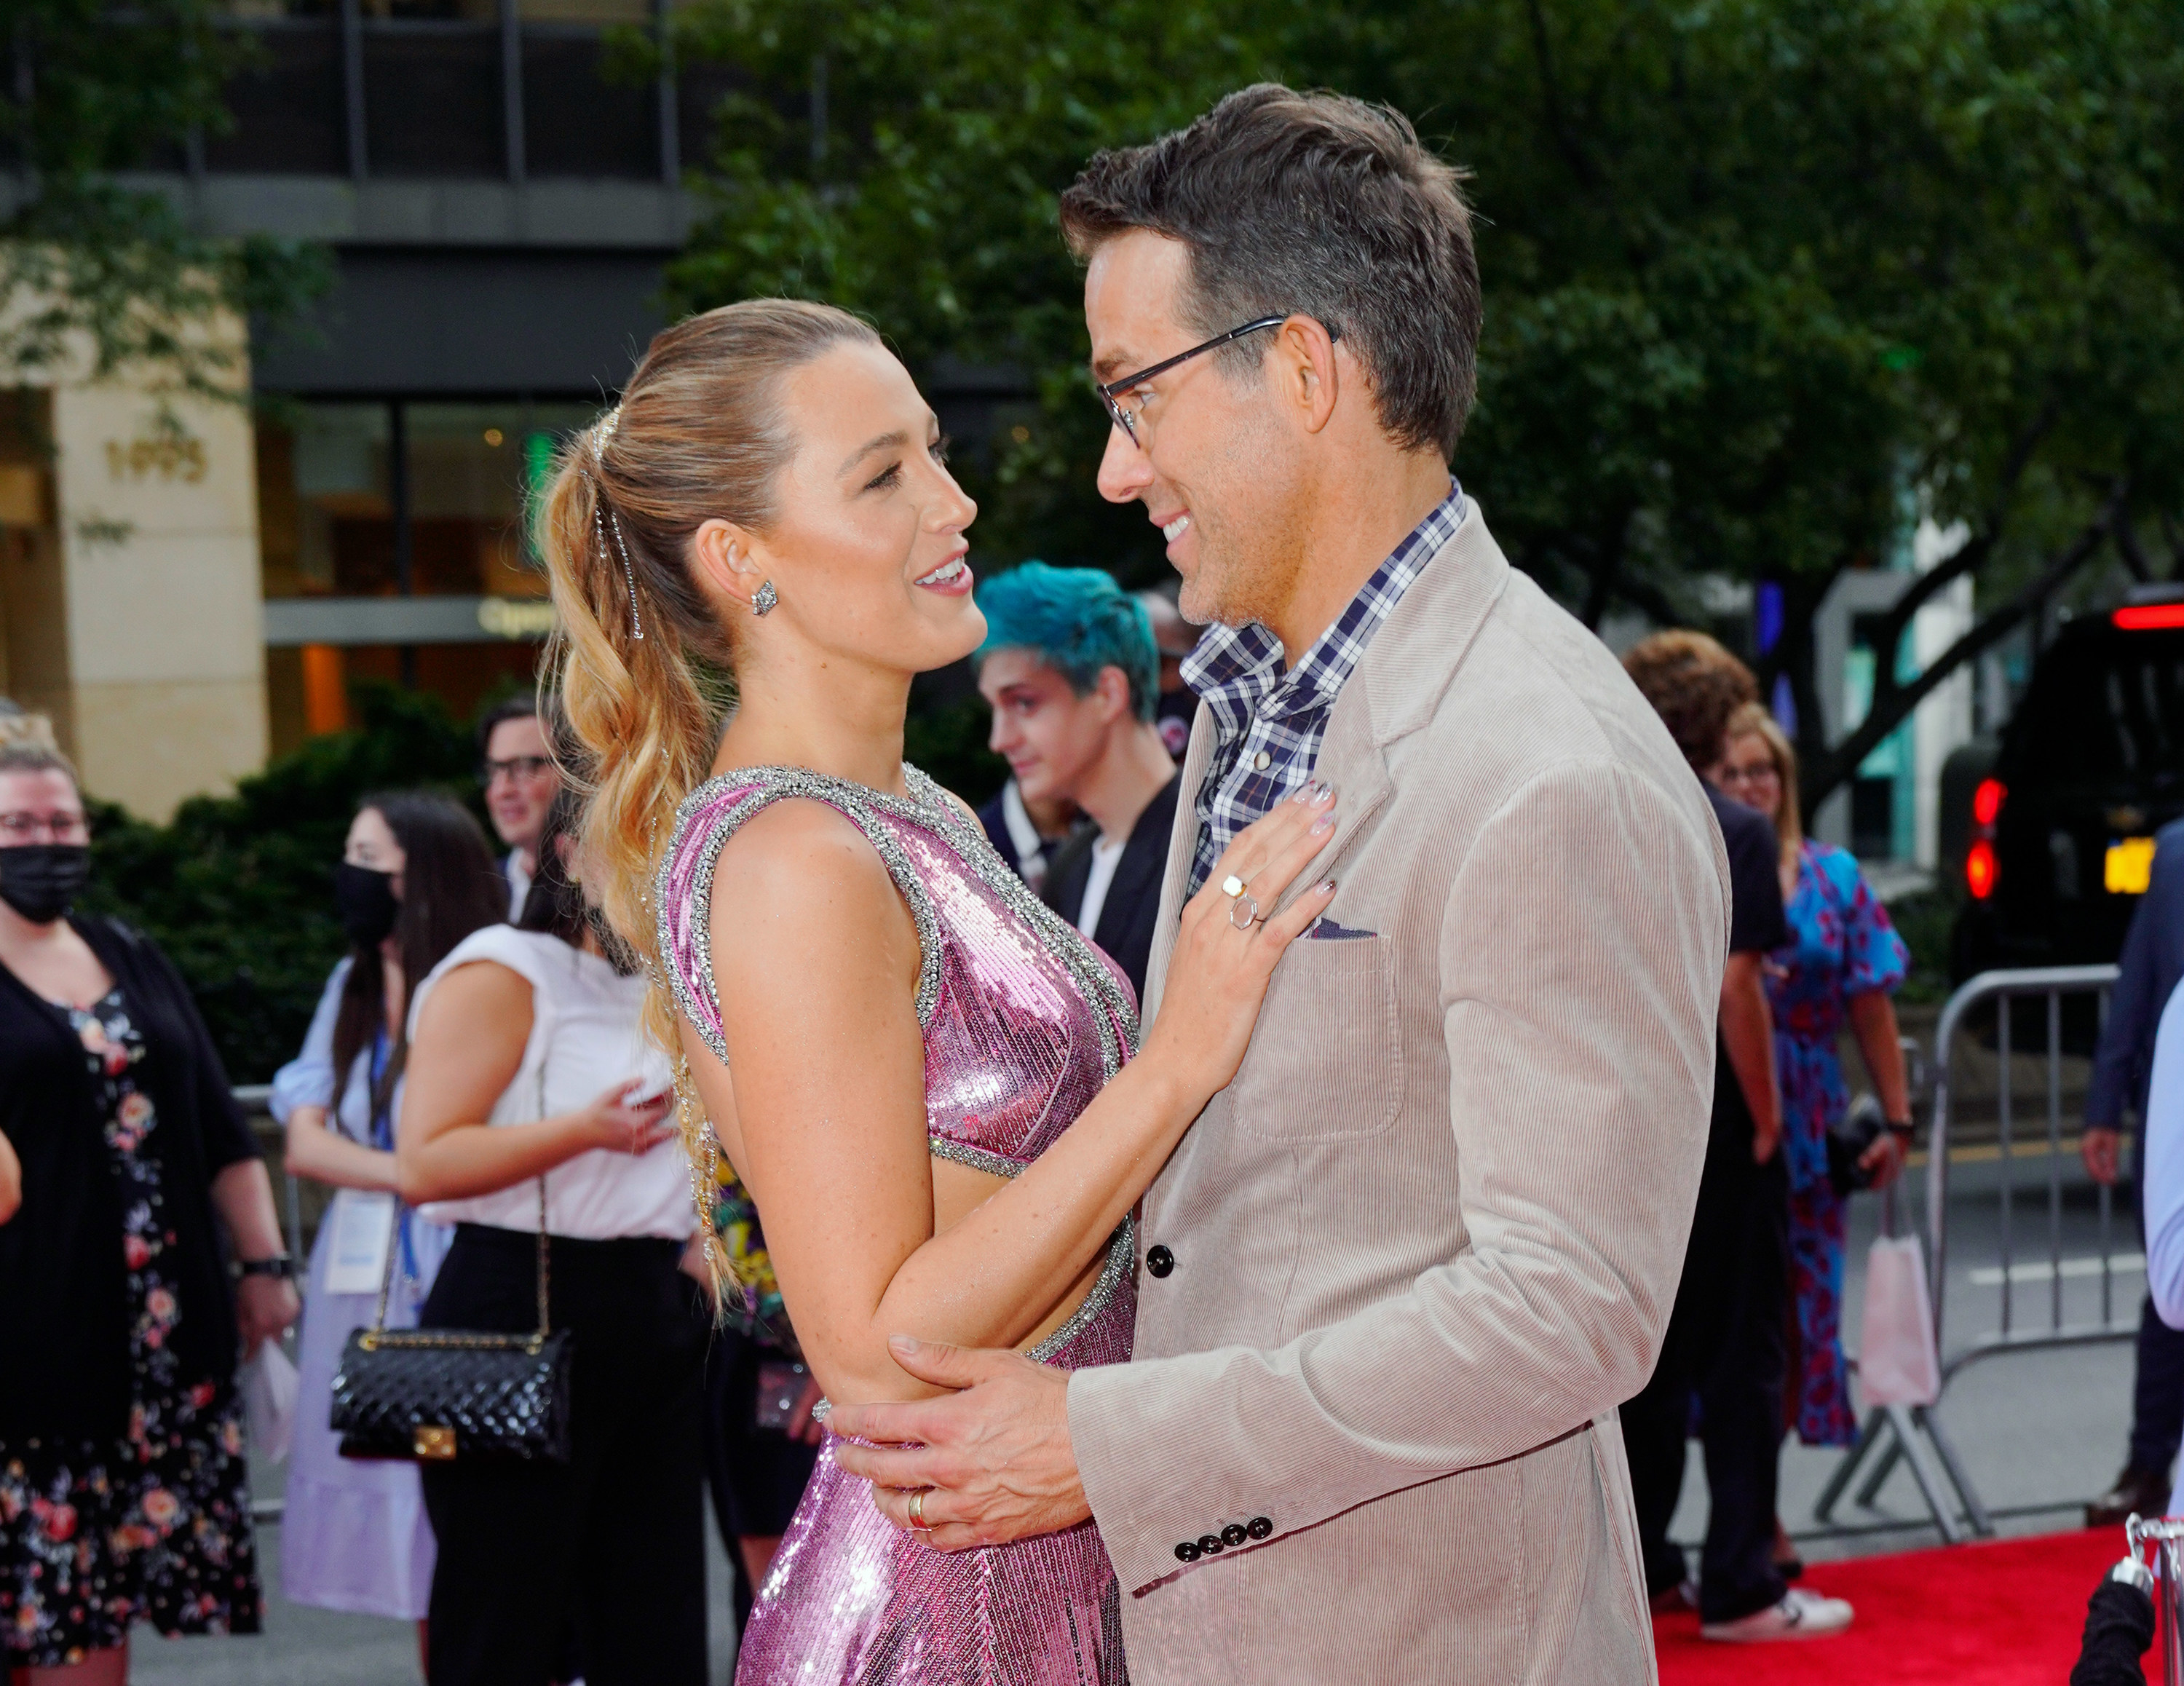 Blake Lively and Ryan Reynolds are photographed at the premiere